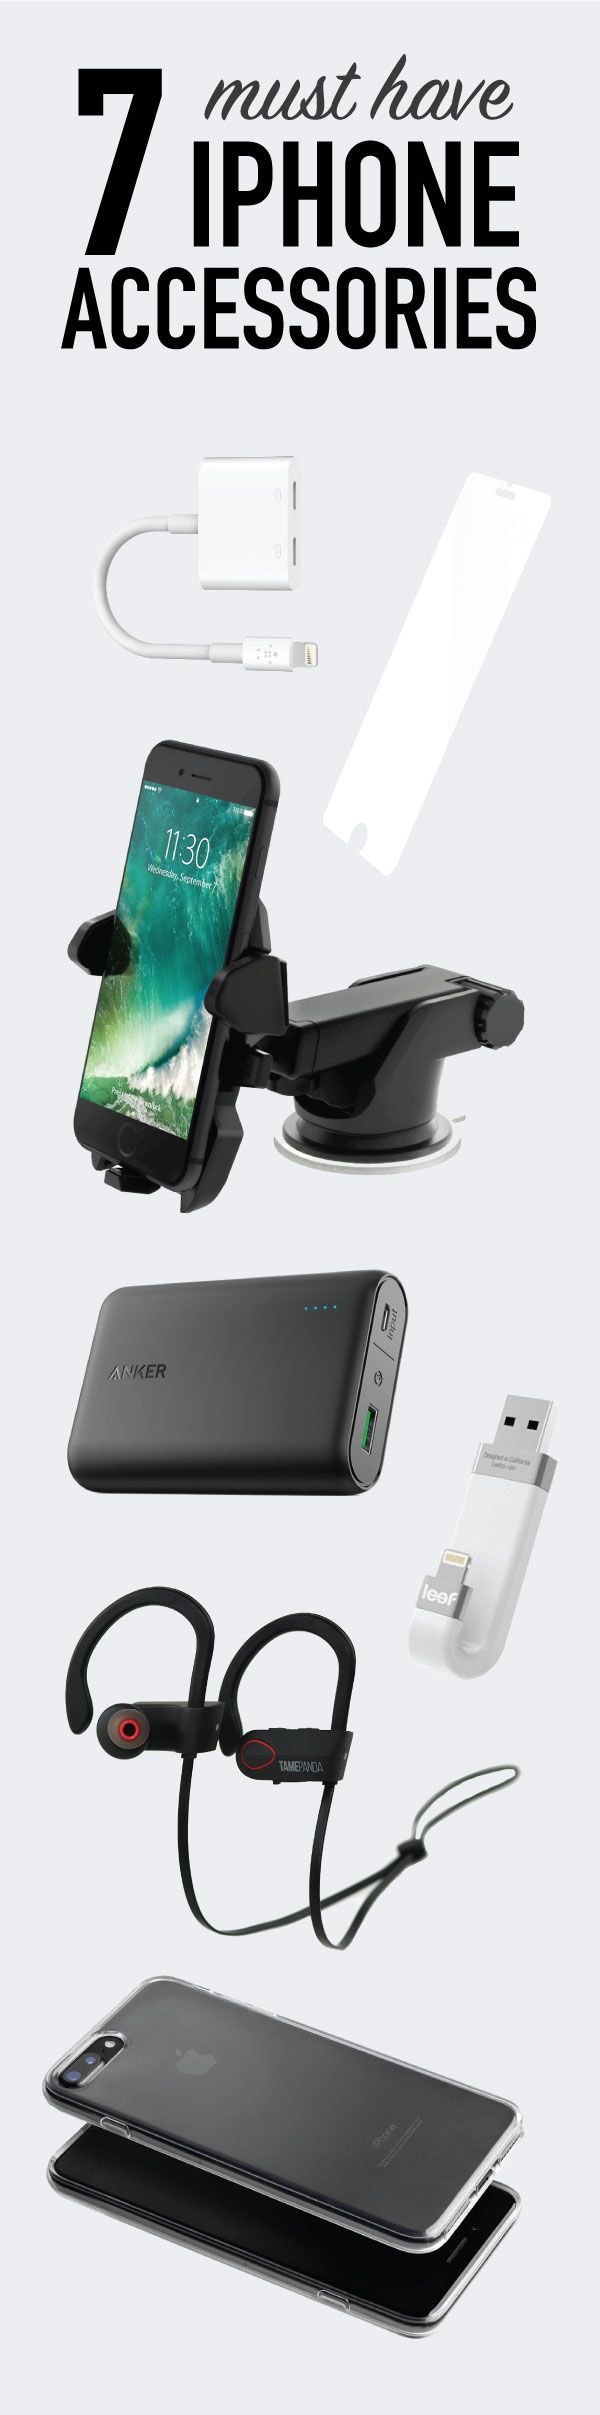 Having an iPhone 7/7+? Cool. Snagging a few must-have accessories for it? Even cooler.